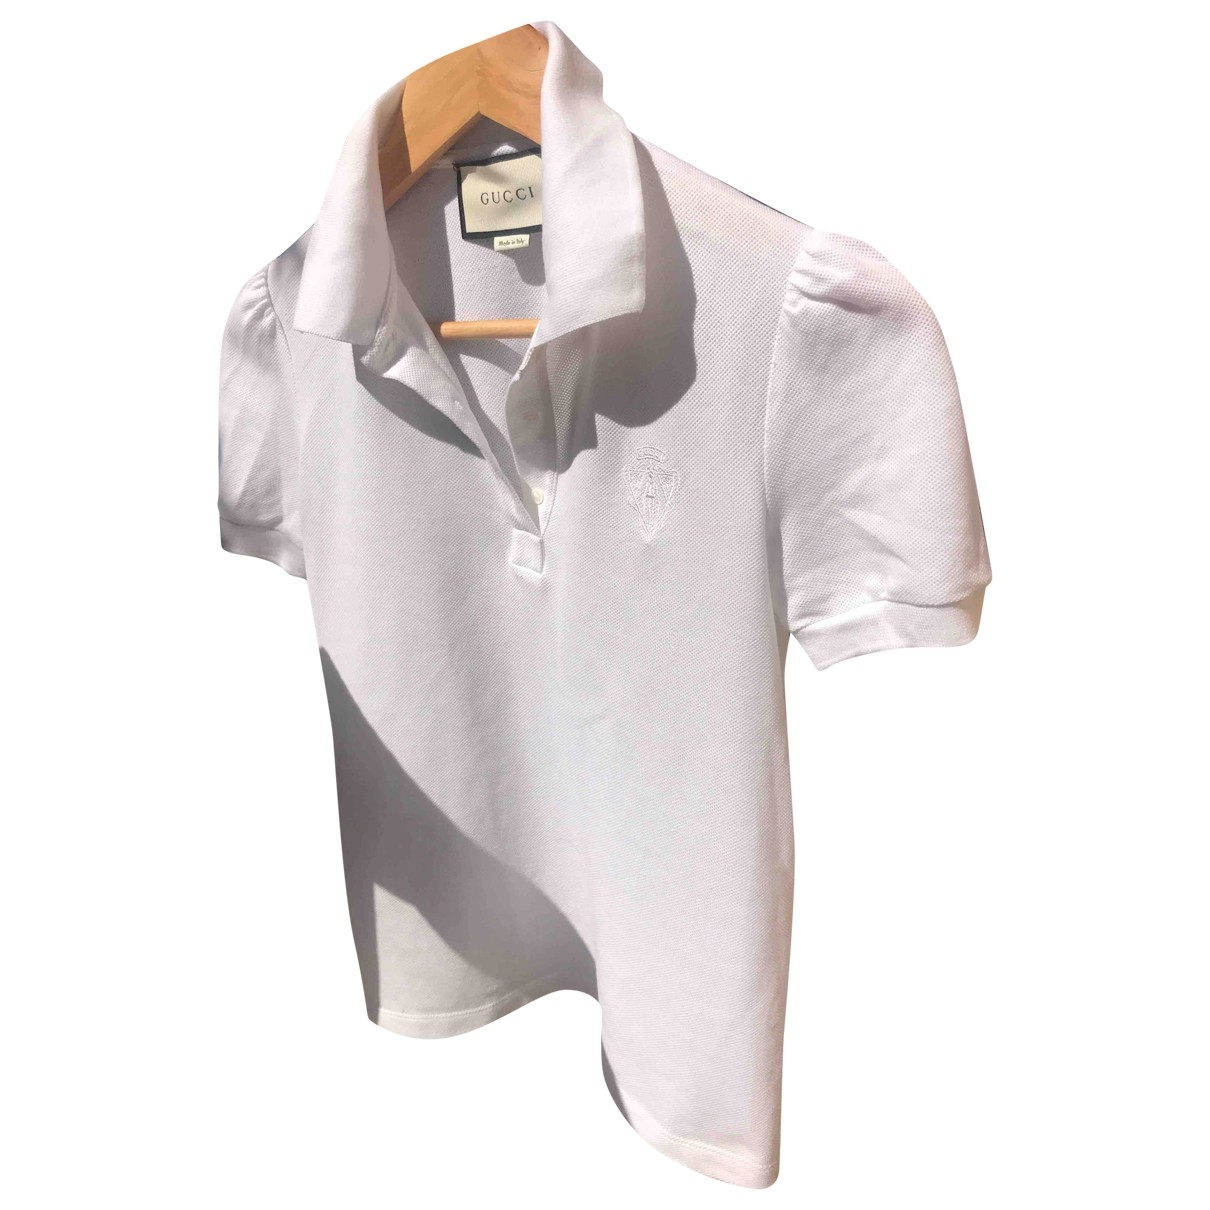 Gucci \N White Cotton  top for Women S International